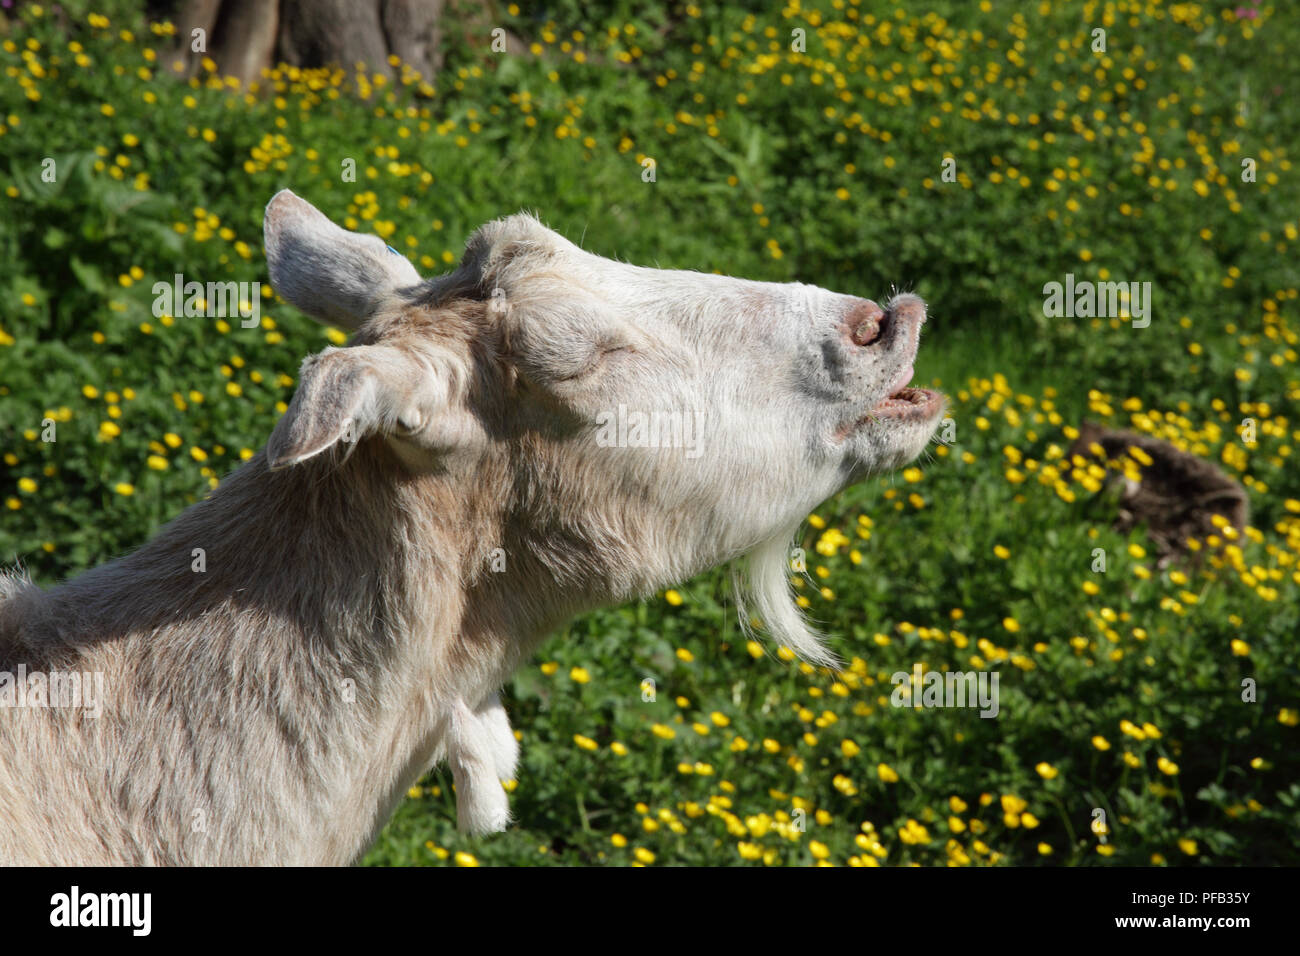 Goat face - Stock Image